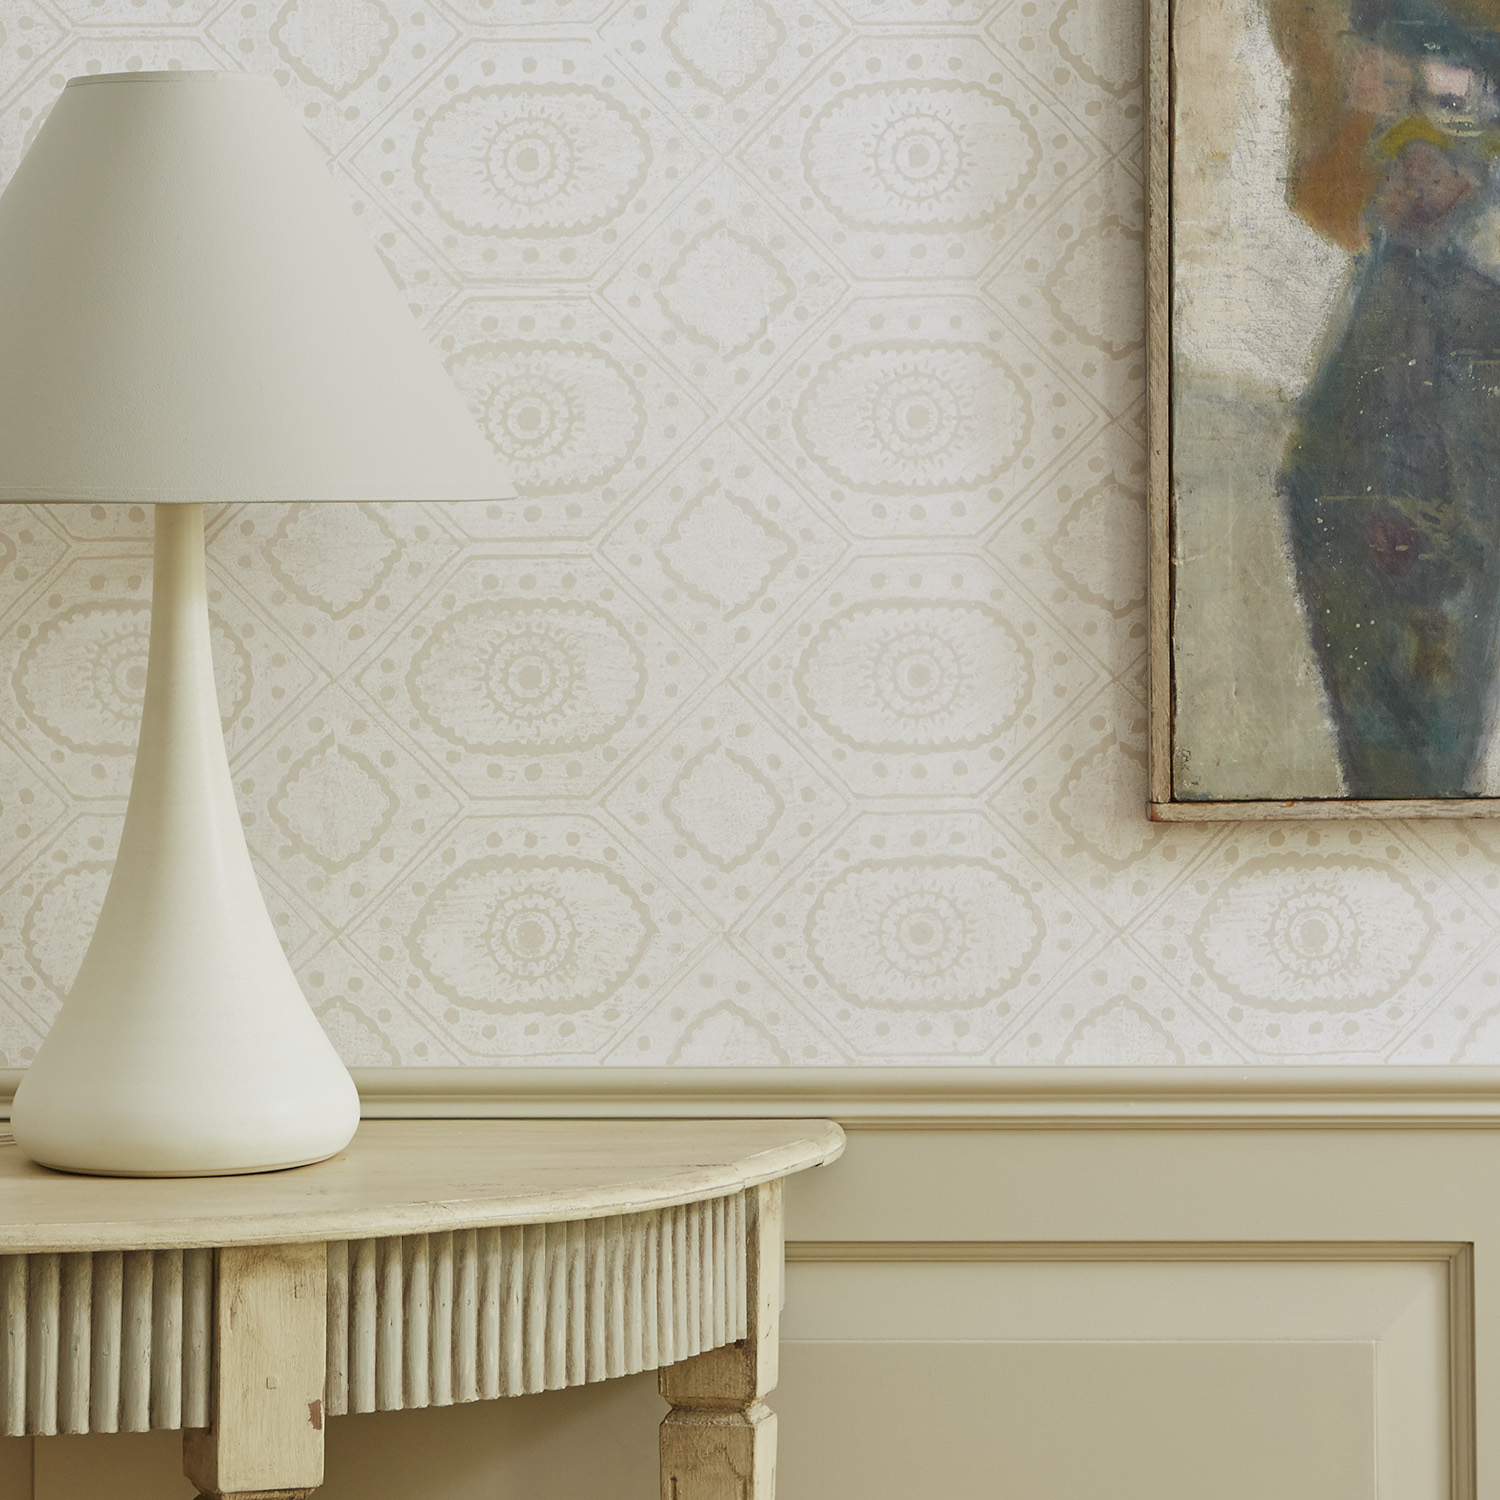 Blithfield_51, Wallpaper 3, Diamond White on Pebble, 900 03.jpg